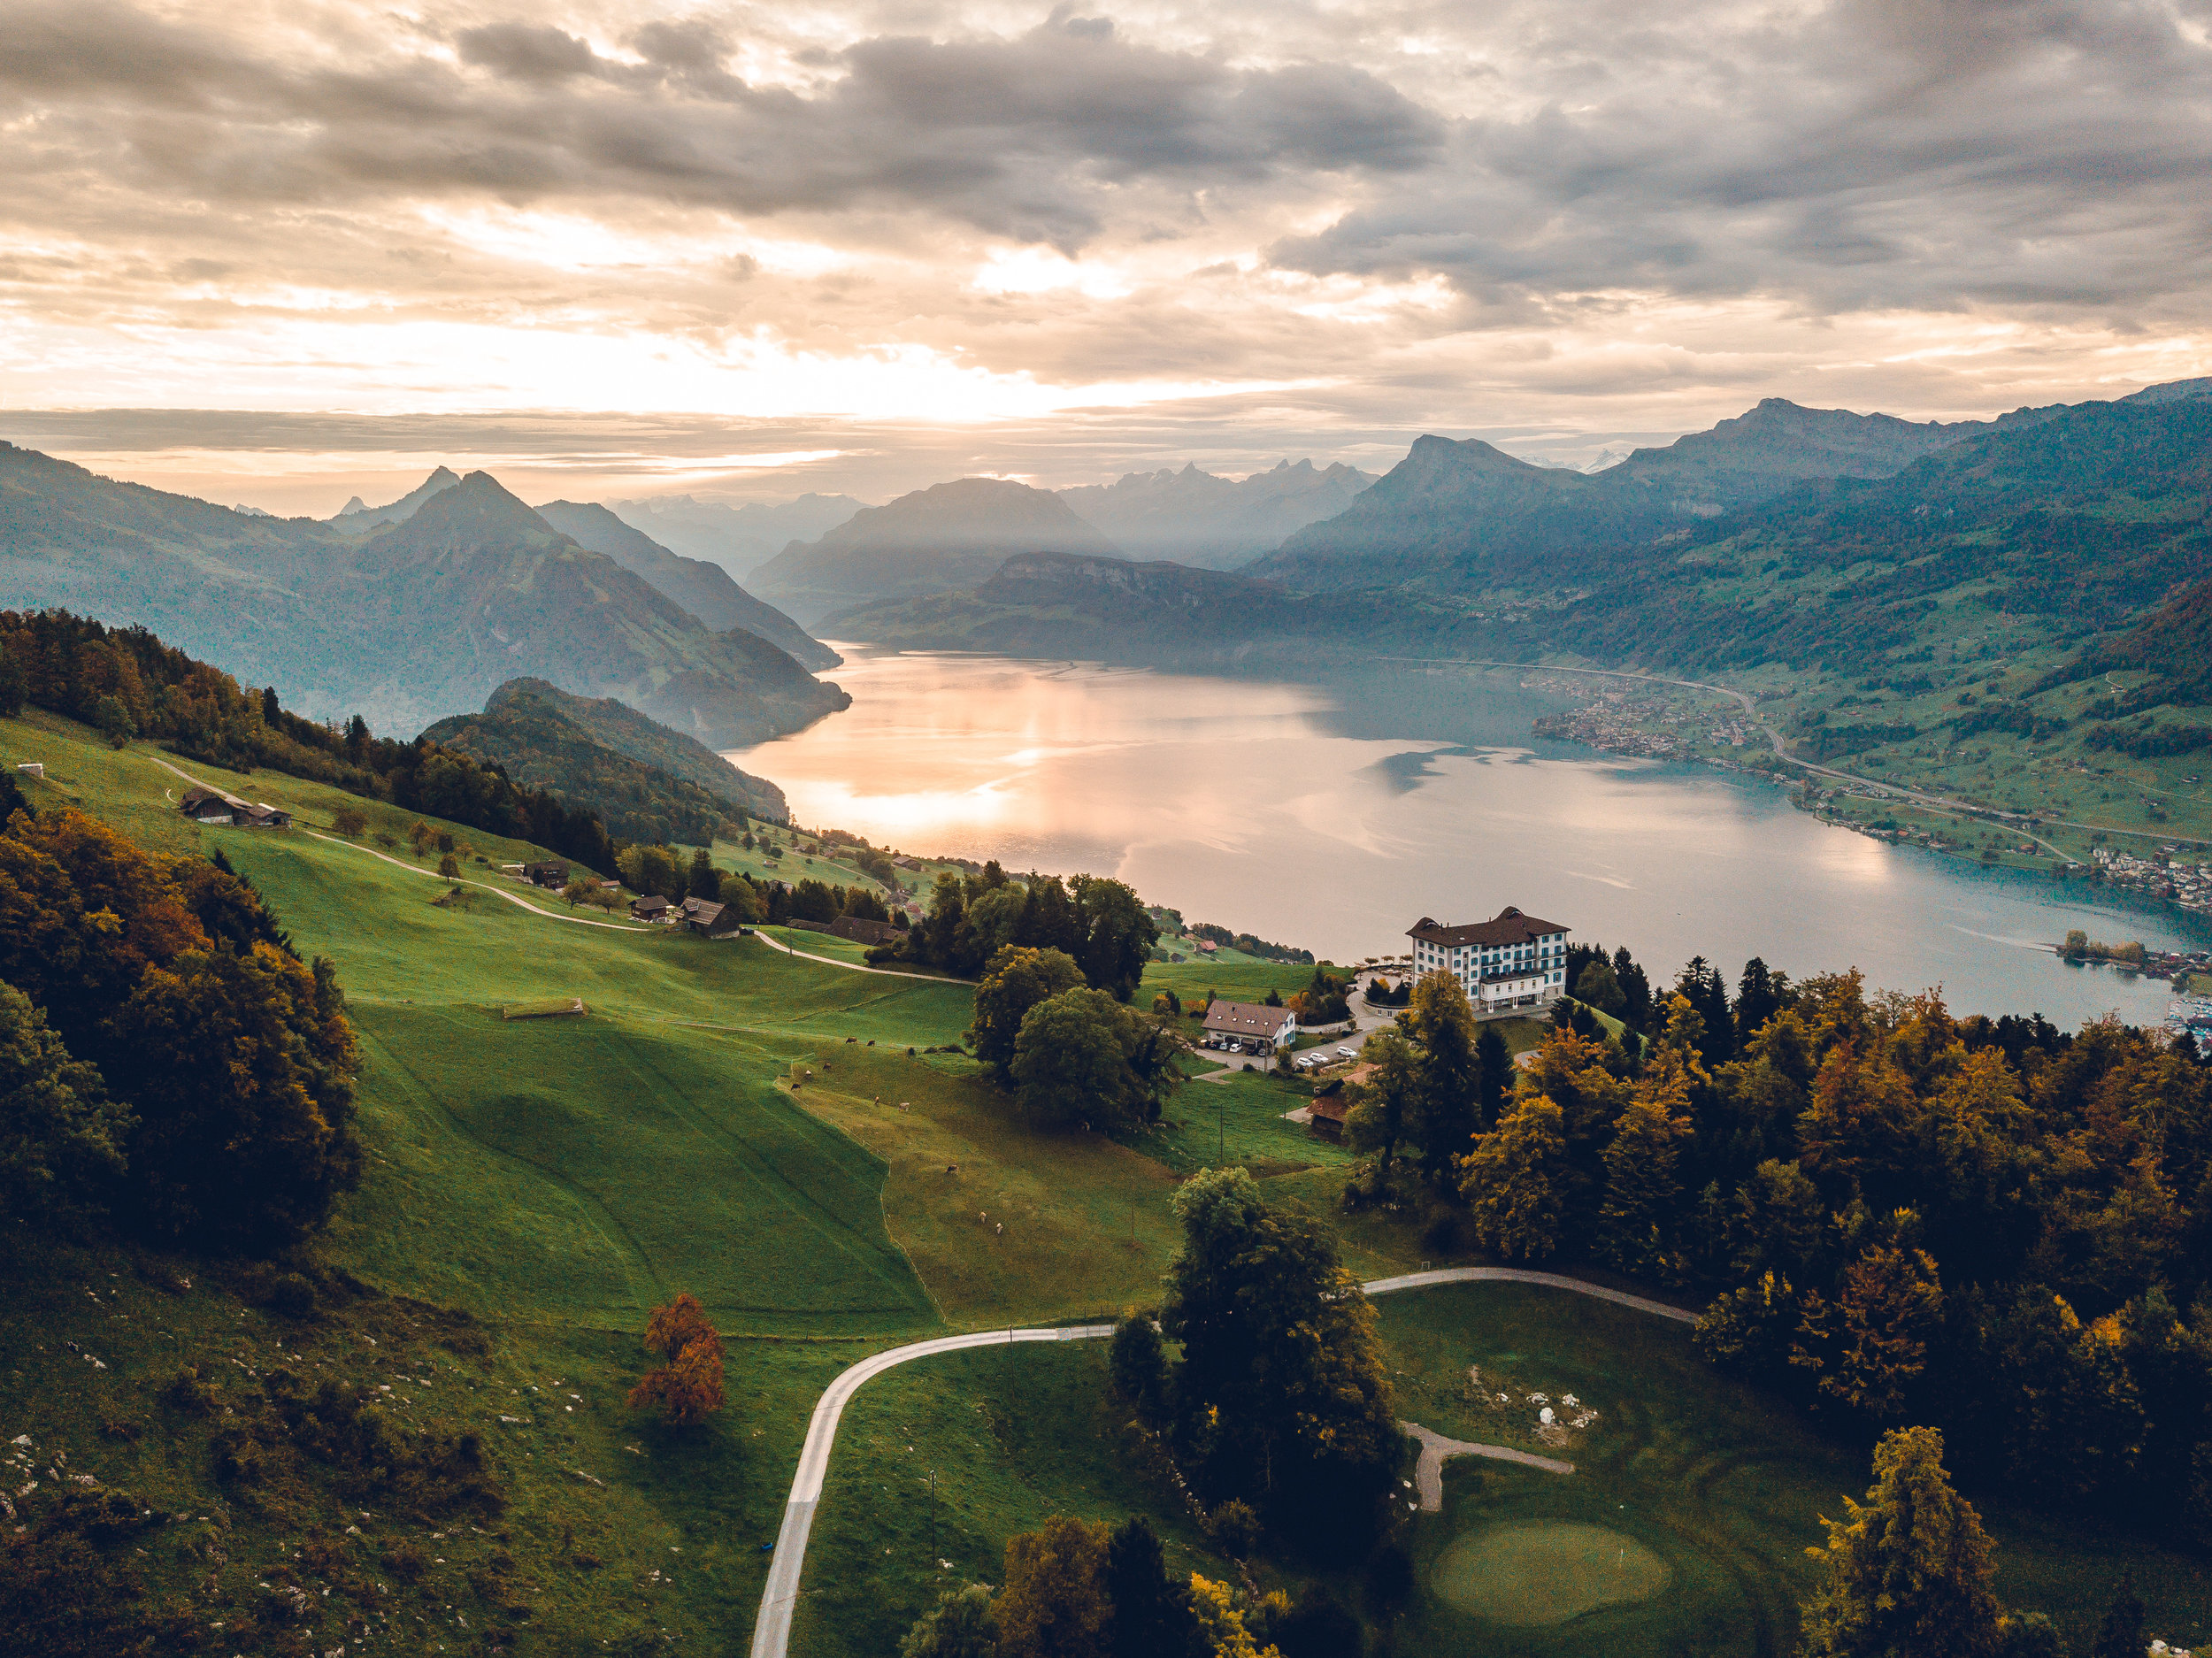 Switzerland - The European alps are my favorite place in the world, and Switzerland might just be my country surrounding them. I love the mountains, people, clear blue lakes, and rolling green hills.